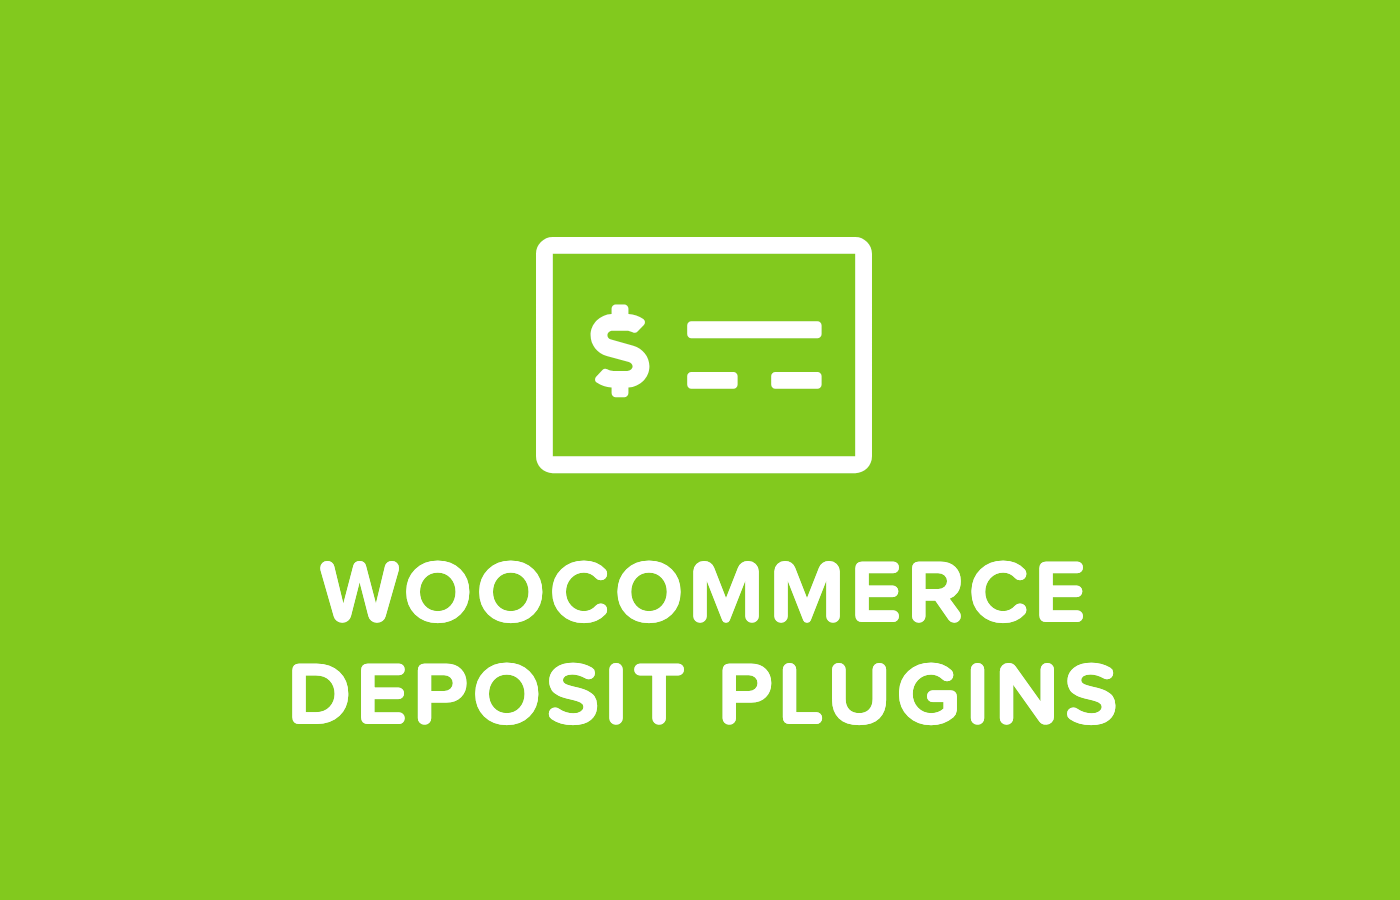 5 WooCommerce Deposit Plugins To Handle Partial Payments